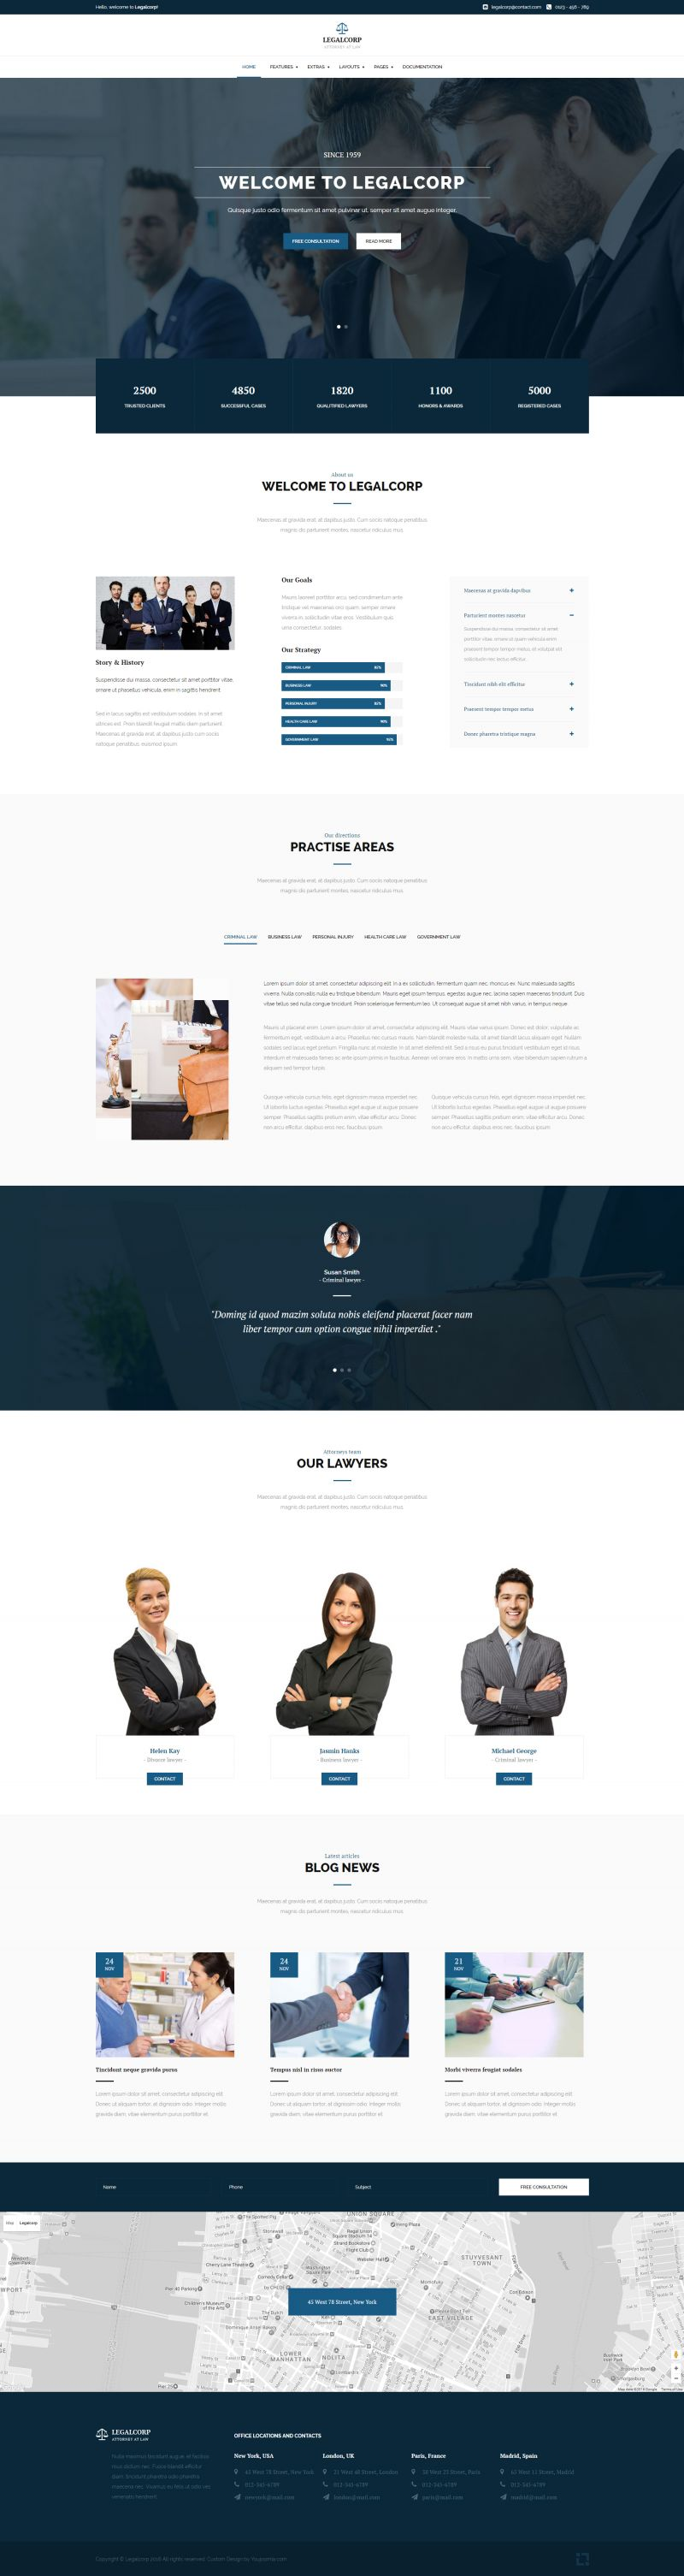 More Than Free Joomla CMS Templates - Home